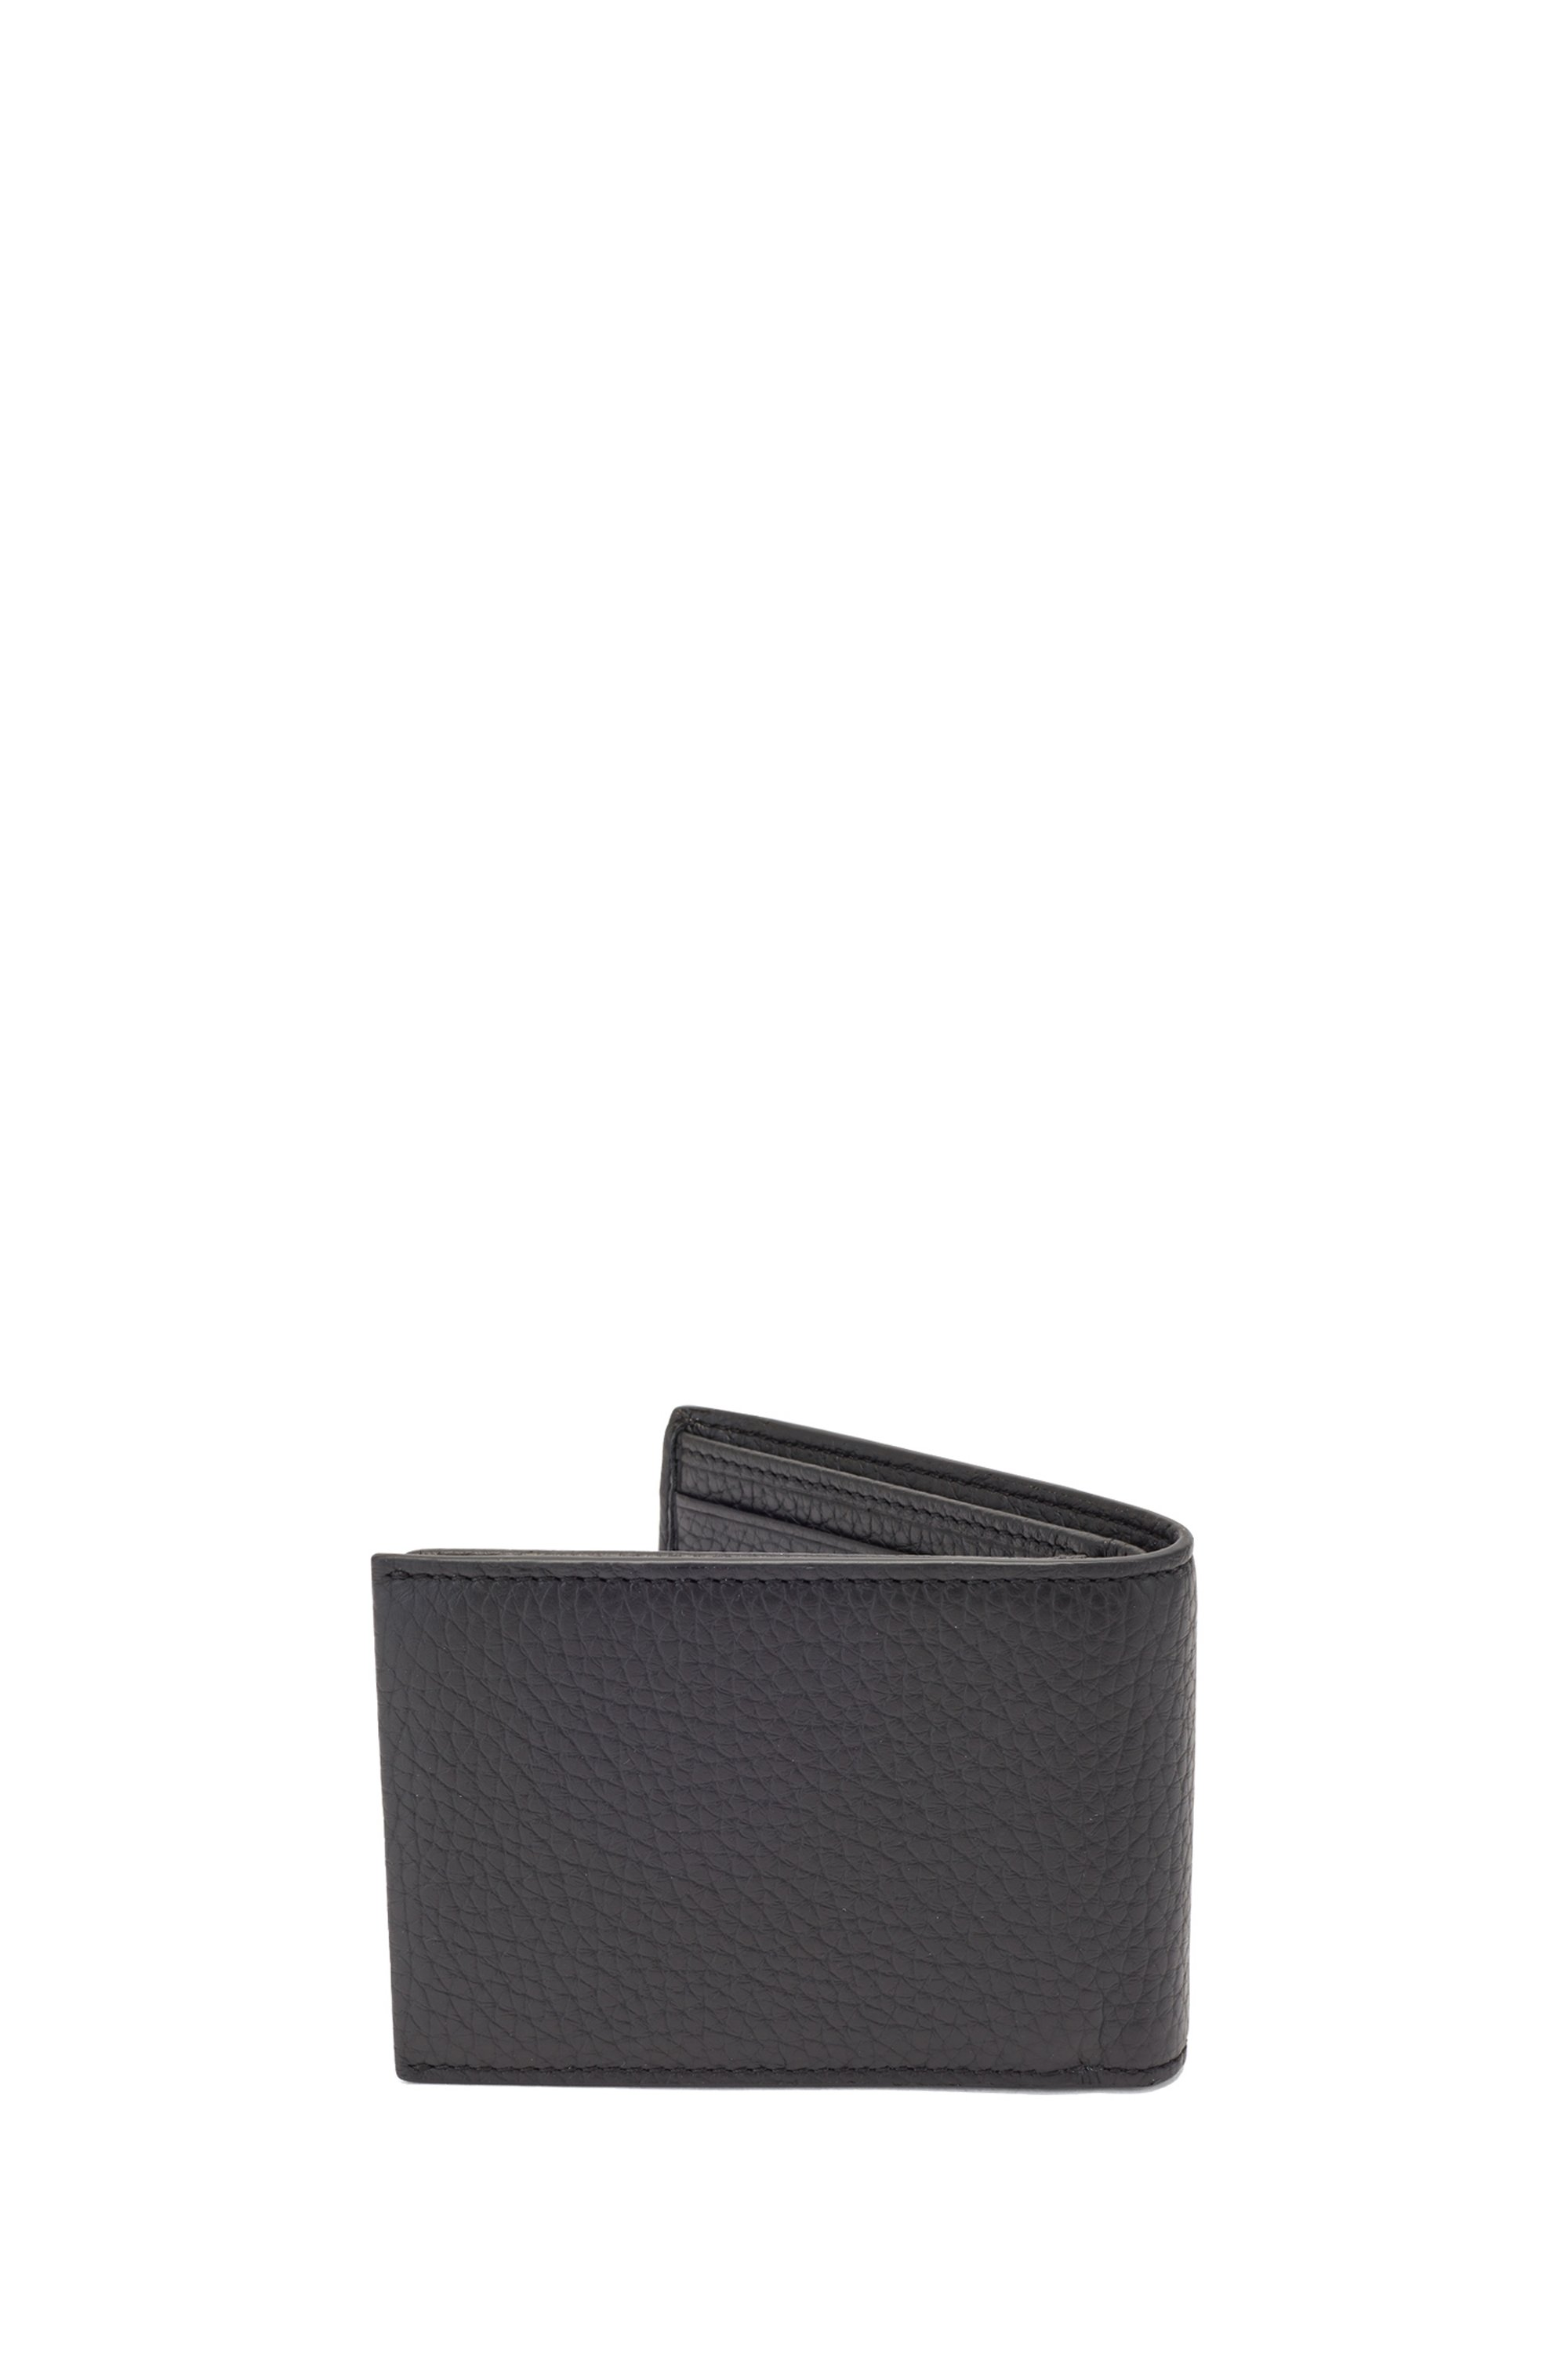 Grained-leather billfold wallet with inner card flap